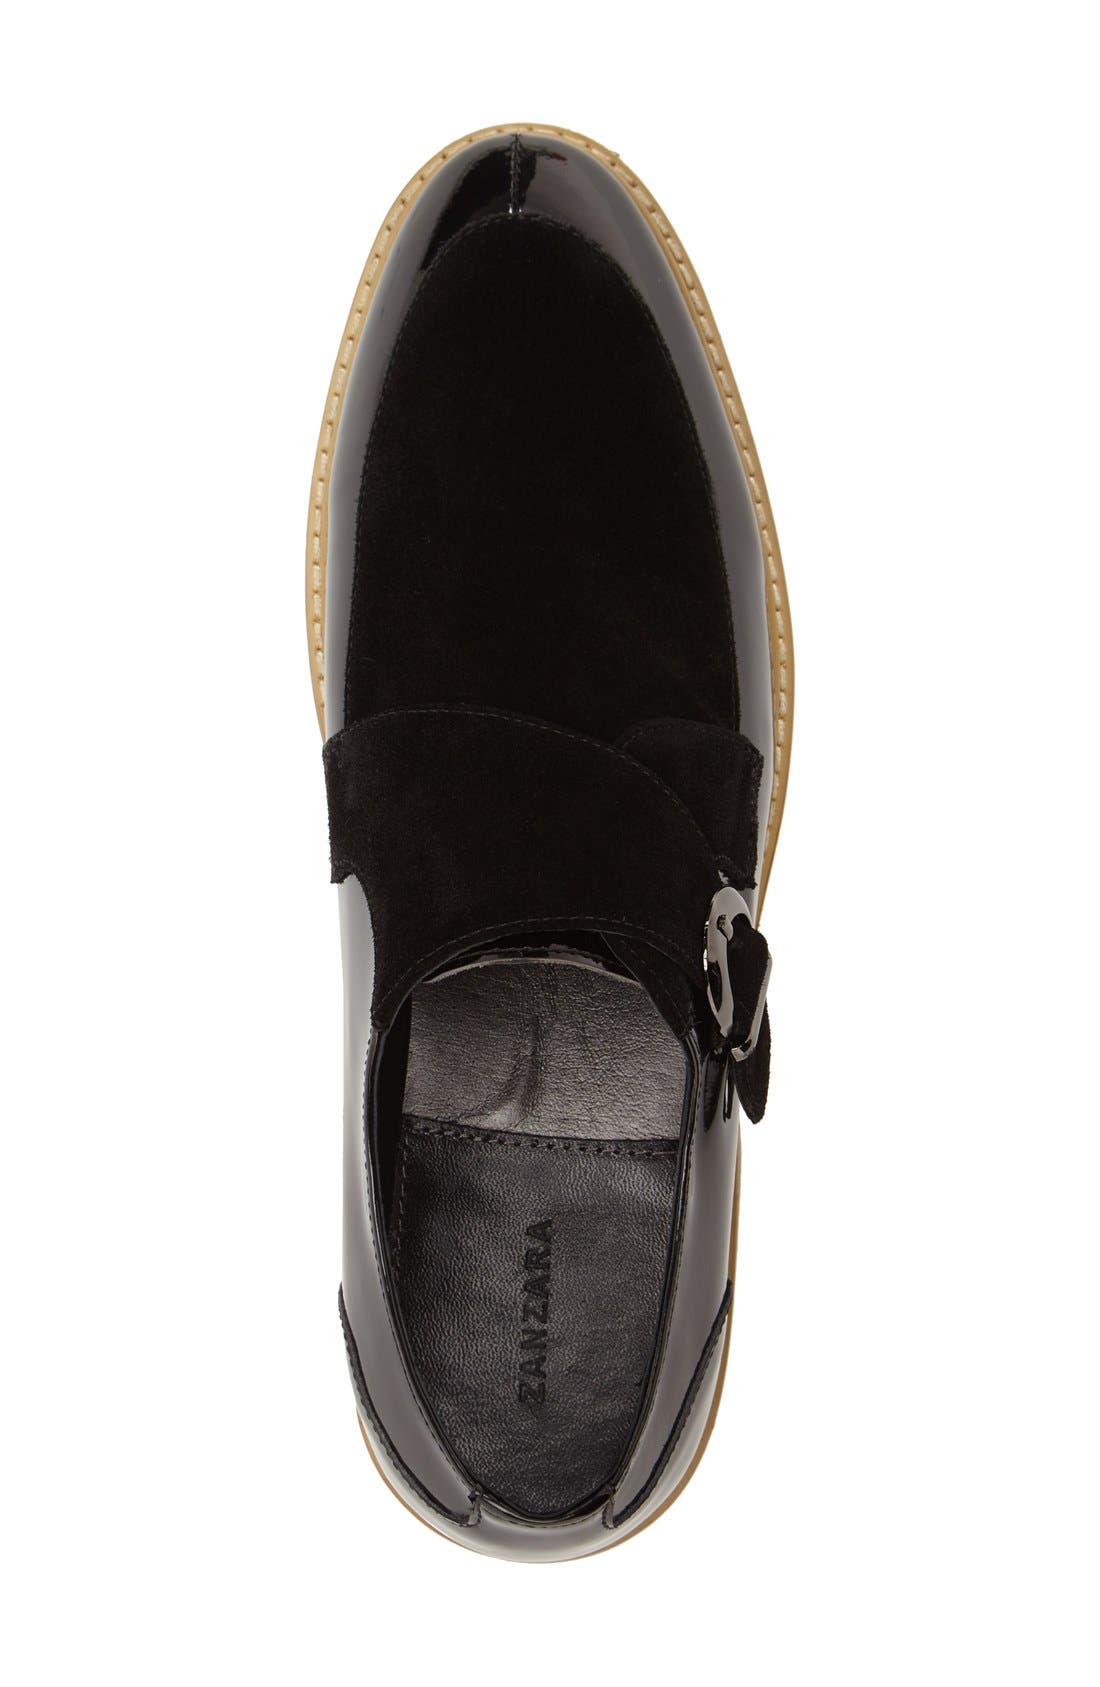 'Courbet' Monk Strap Shoe,                             Alternate thumbnail 3, color,                             Black